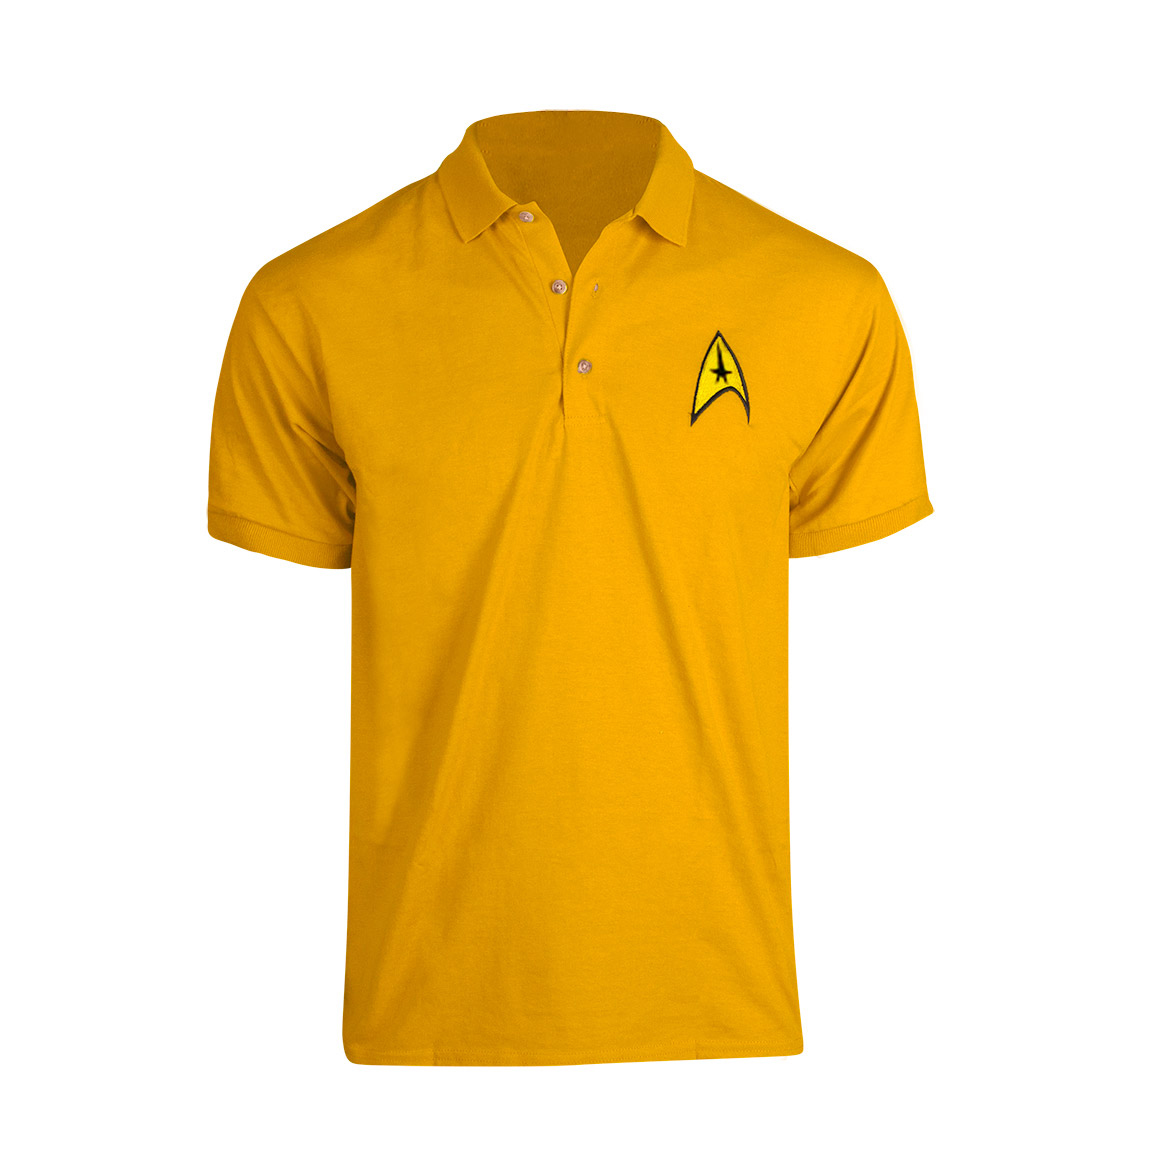 Star Trek Uniform Polo Shirts